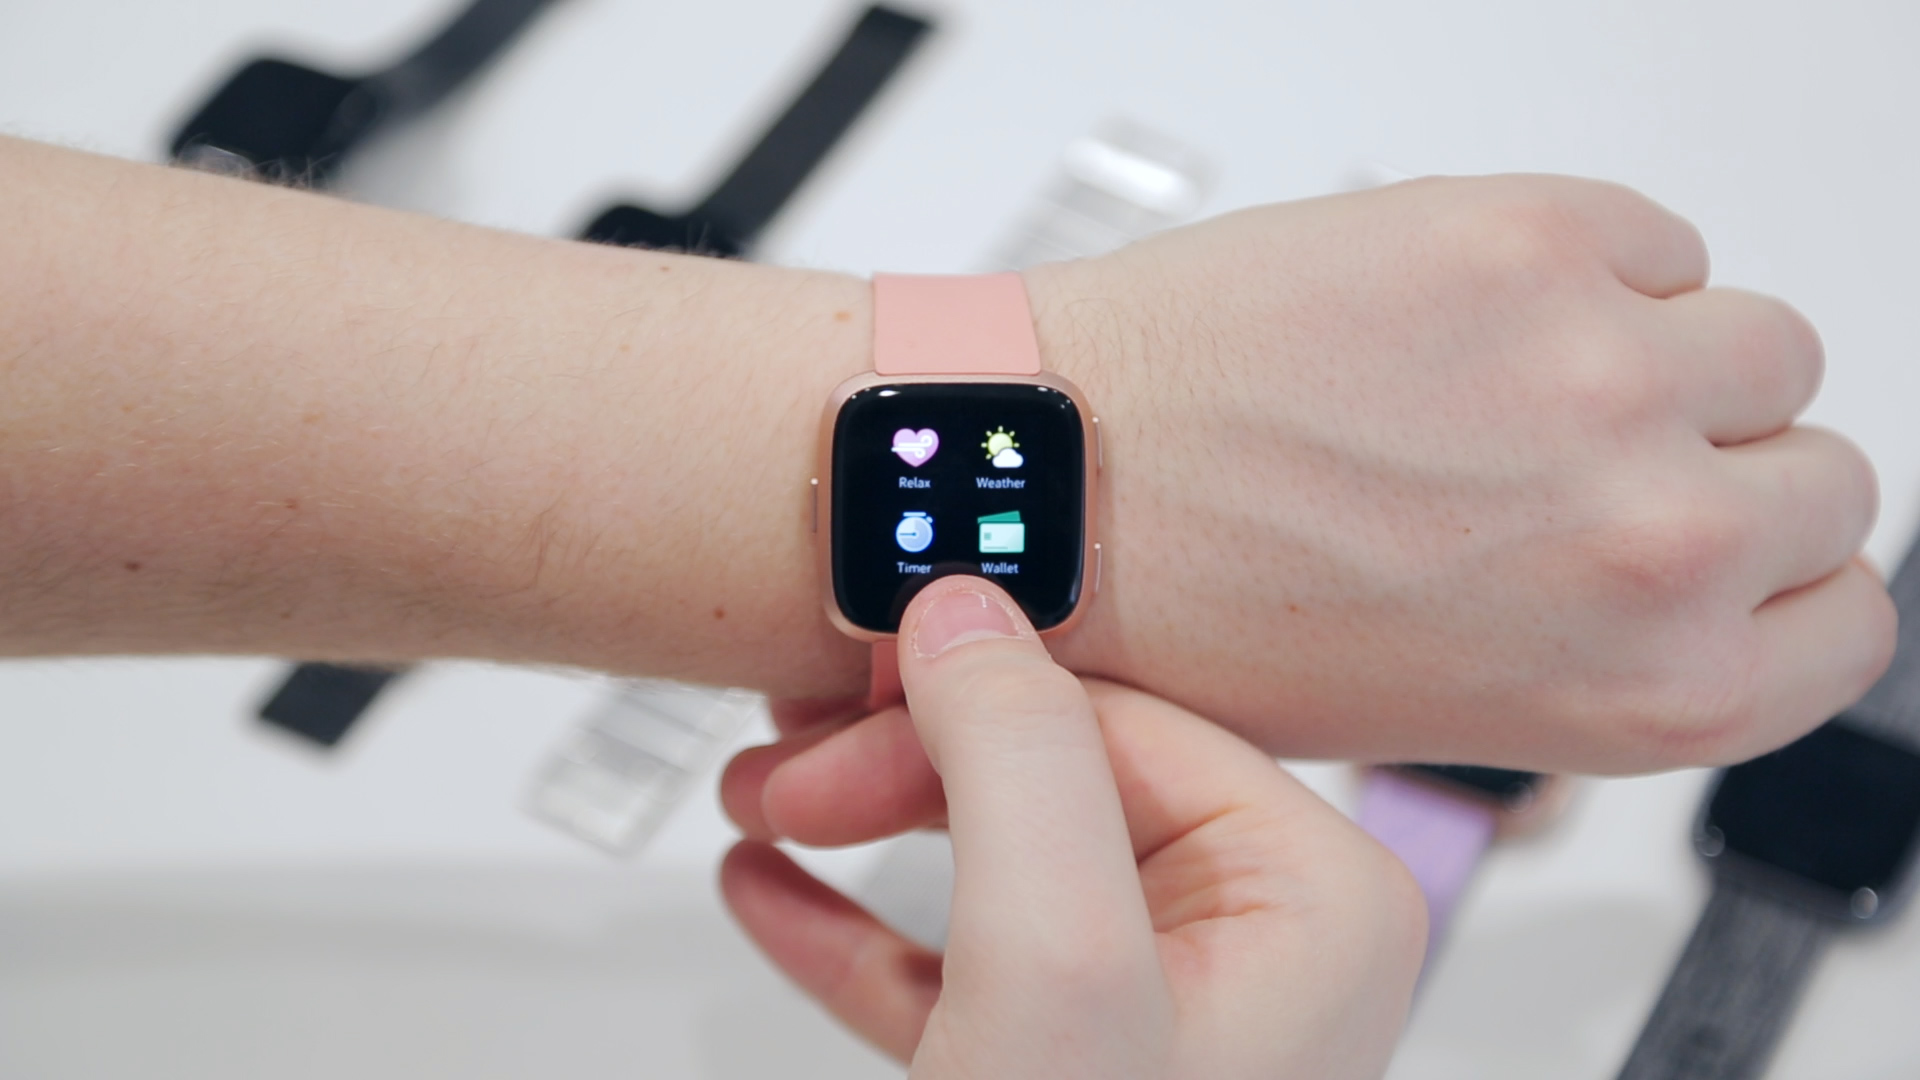 Should you use a smartwatch or fitness tracker if you have a